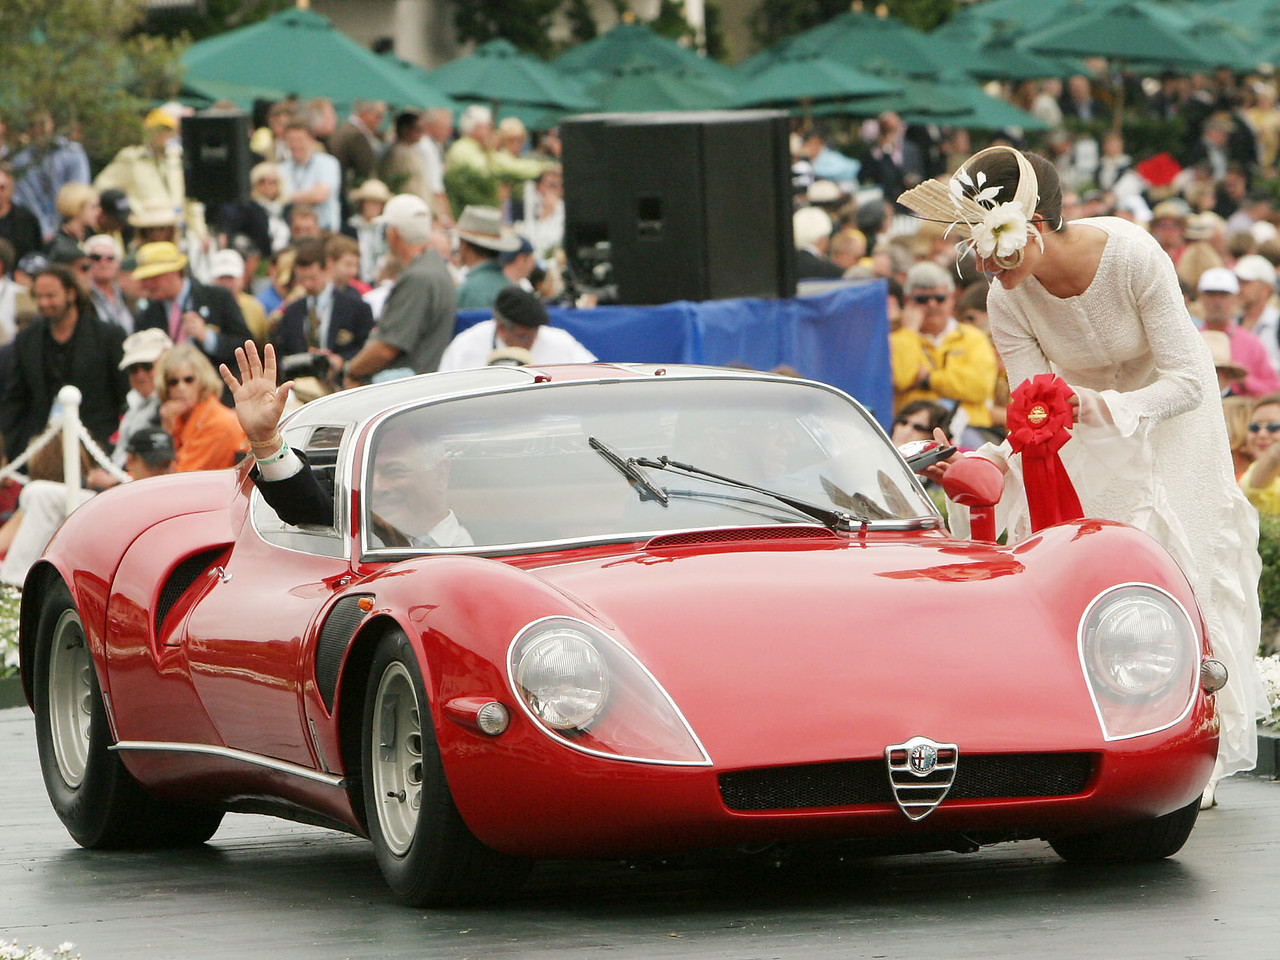 1968 Alfa Romeo Tipo 33 Stradale Coupé owned by Lawrence Auriana from Stamford, Connecticut 2nd Class E-7  (Alfa Romeo Postwar)